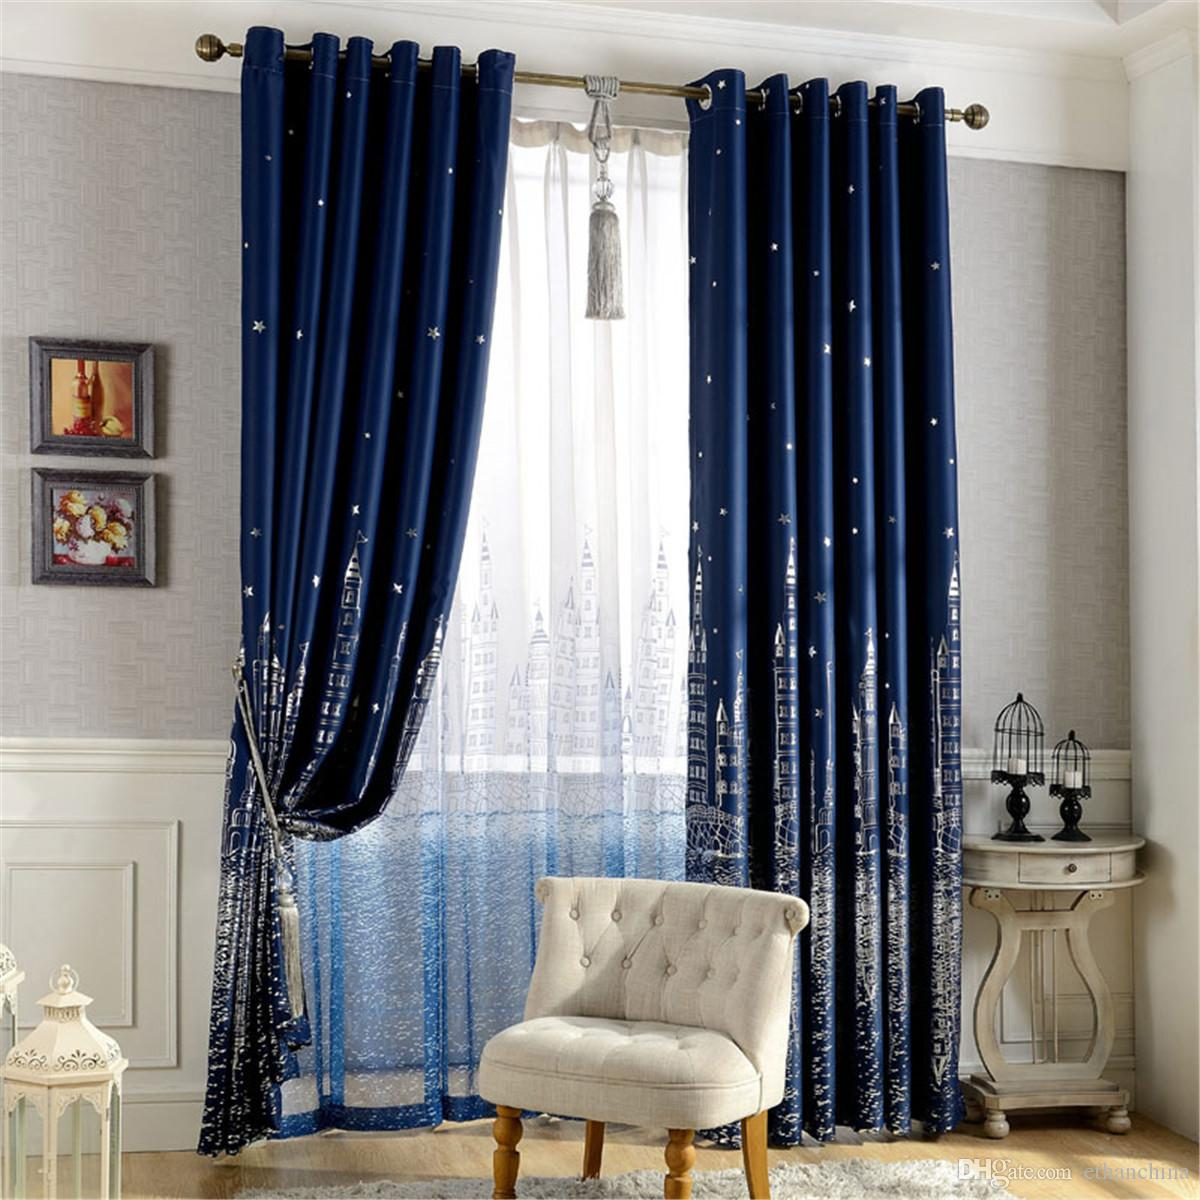 patterned curtains for living room. See larger image 2018 Ivolador Castle Pattern Curtains Polyester Blackout Curtain